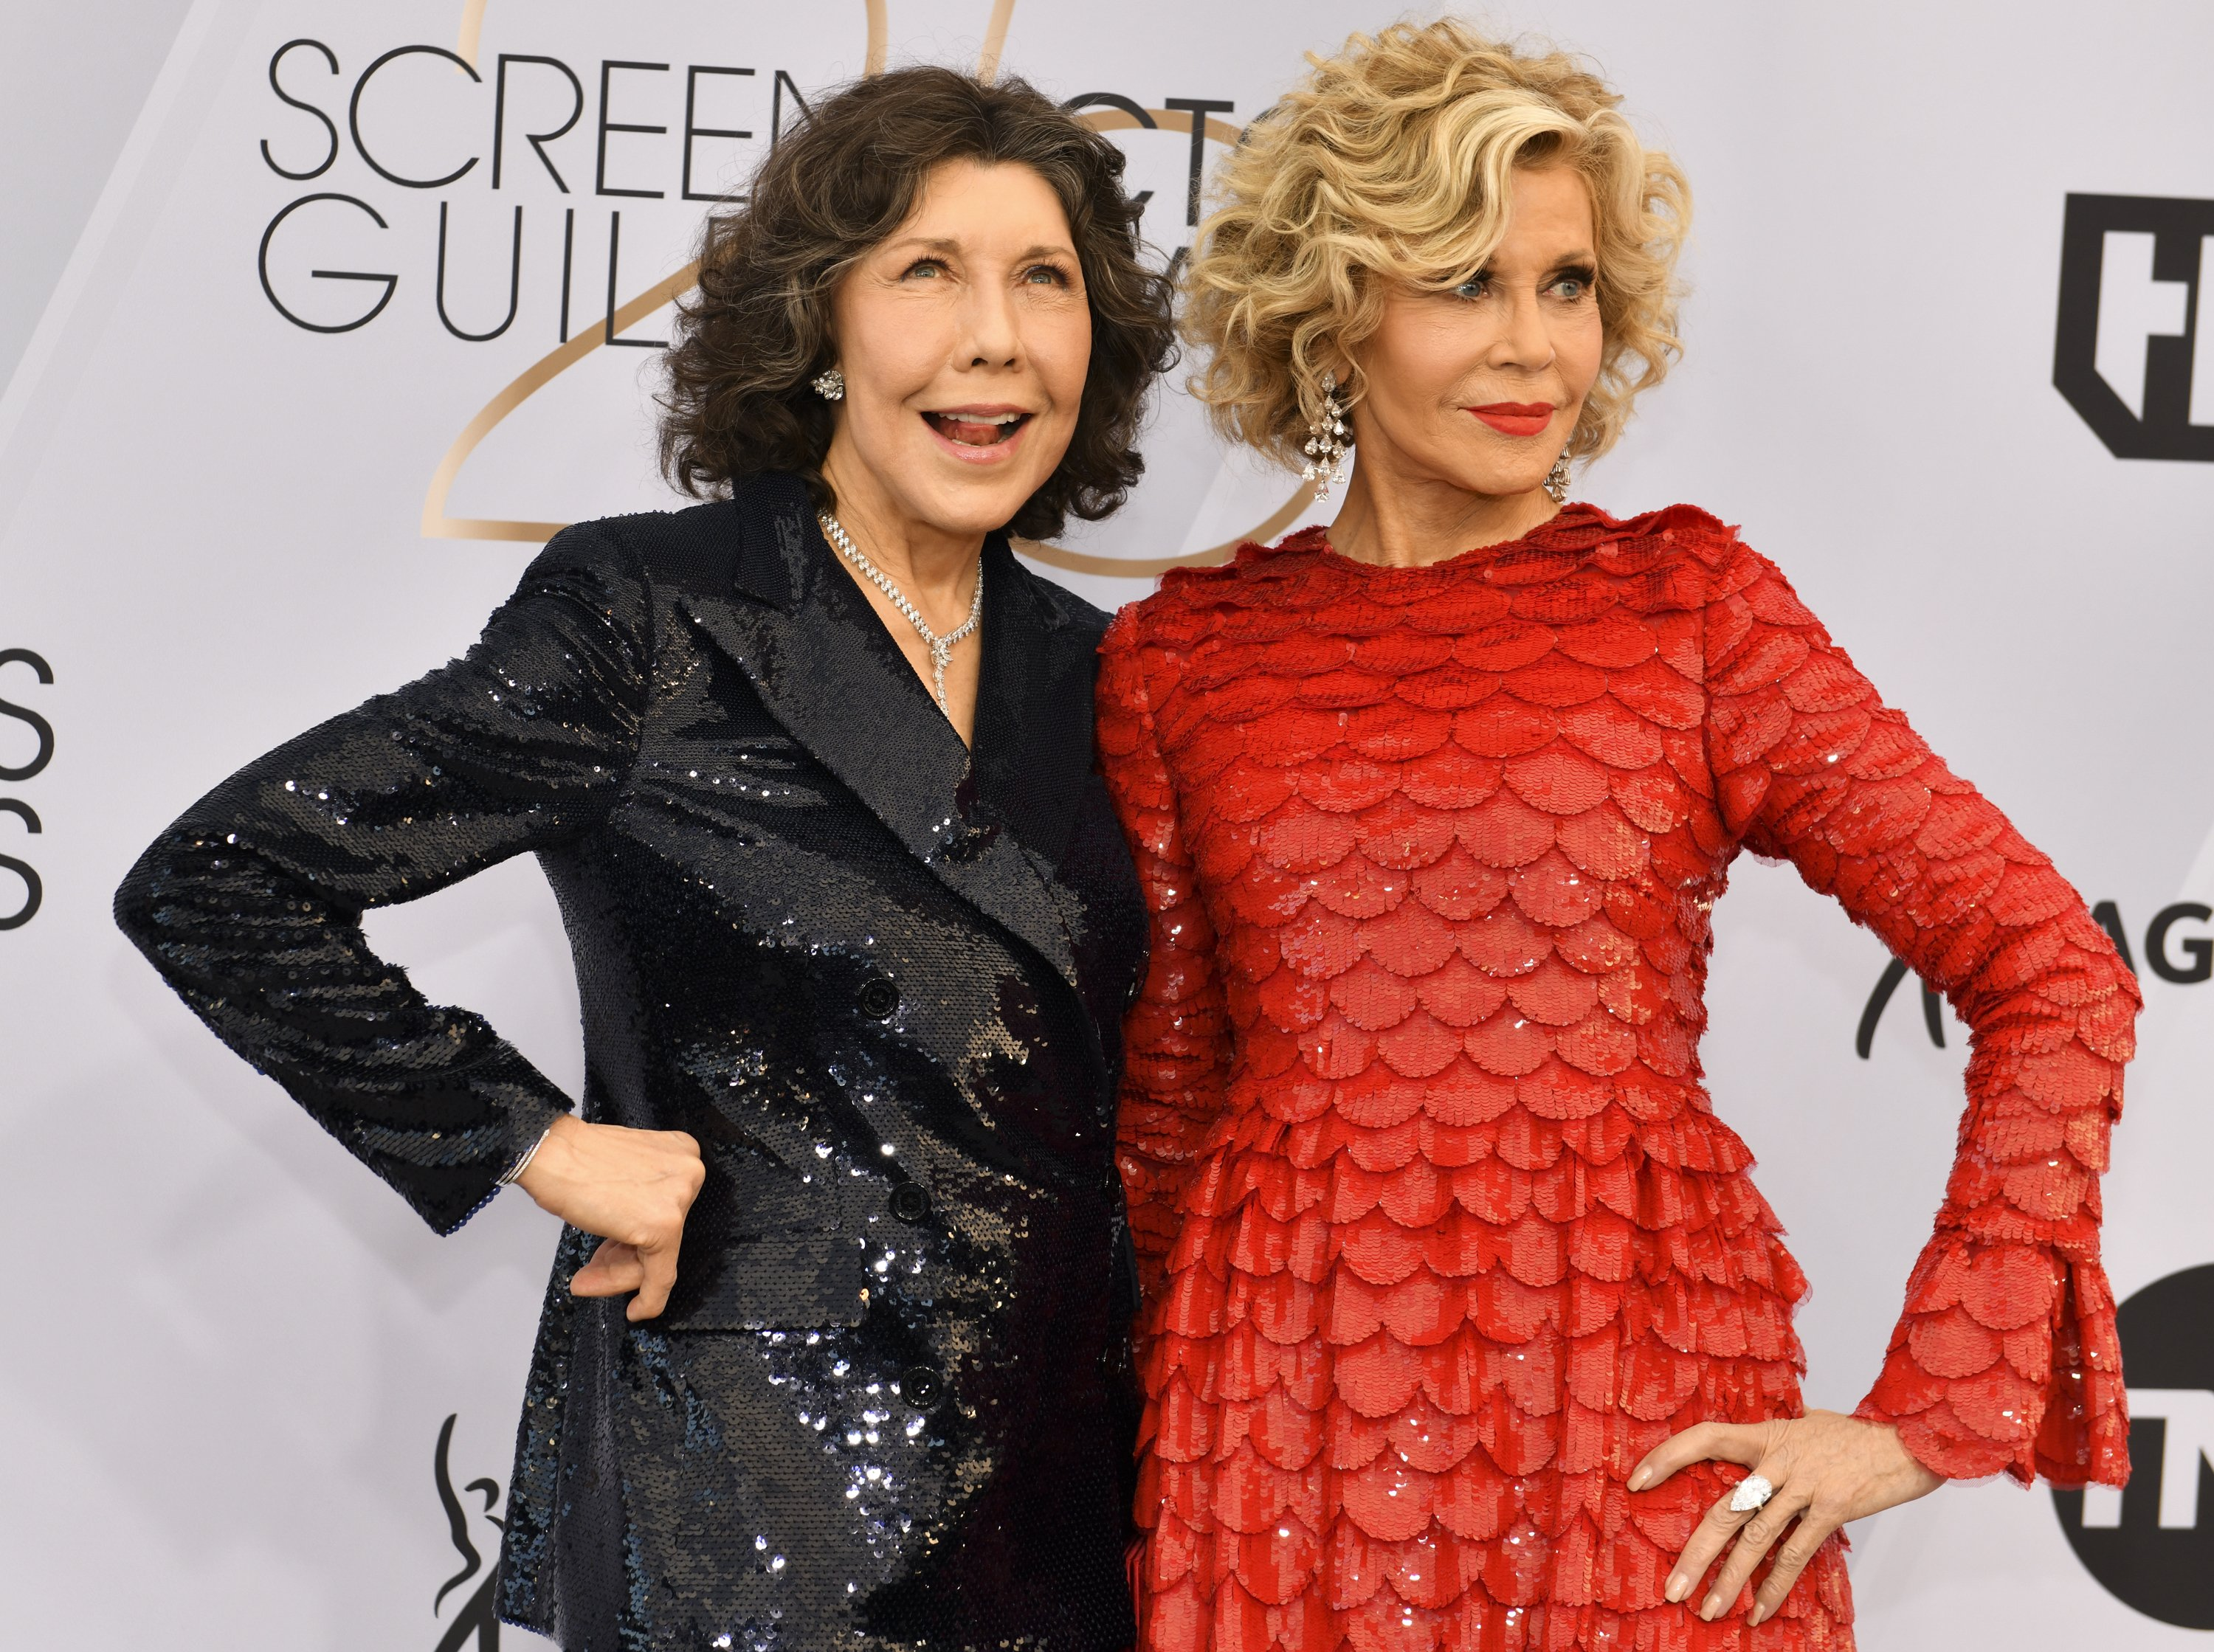 Lily Tomlin and Jane Fonda arrive at the 25th Annual Screen Actors Guild Awards on January 27, 2019 | Photo: GettyImages